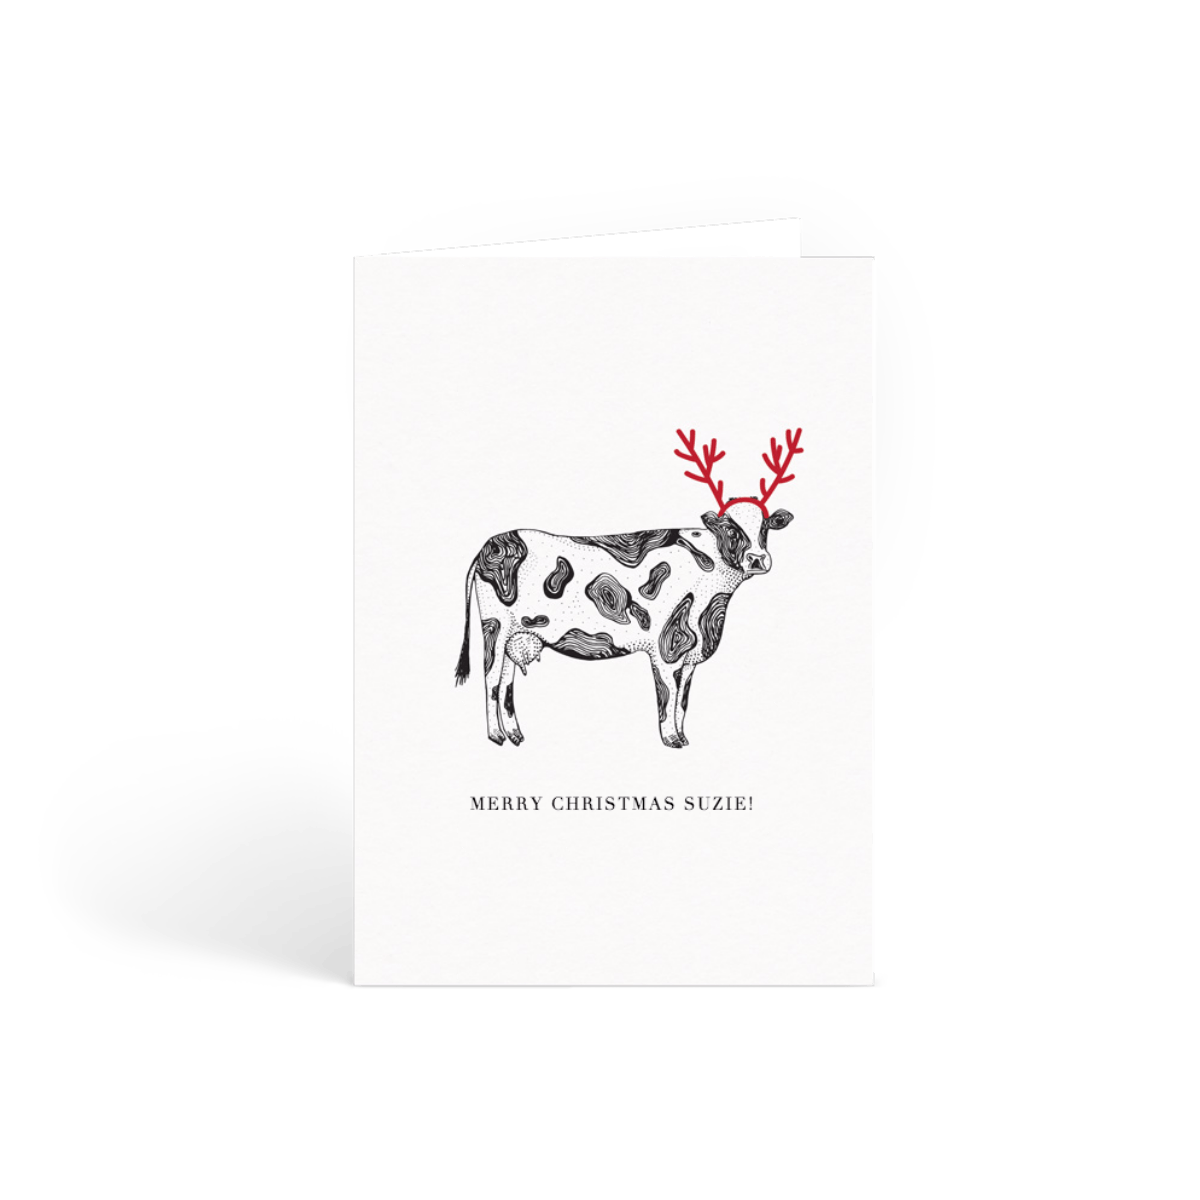 Https%3a%2f%2fwww.papier.com%2fproduct image%2f12458%2f2%2fchristmas cow 3137 avant 1476958072.png?ixlib=rb 1.1